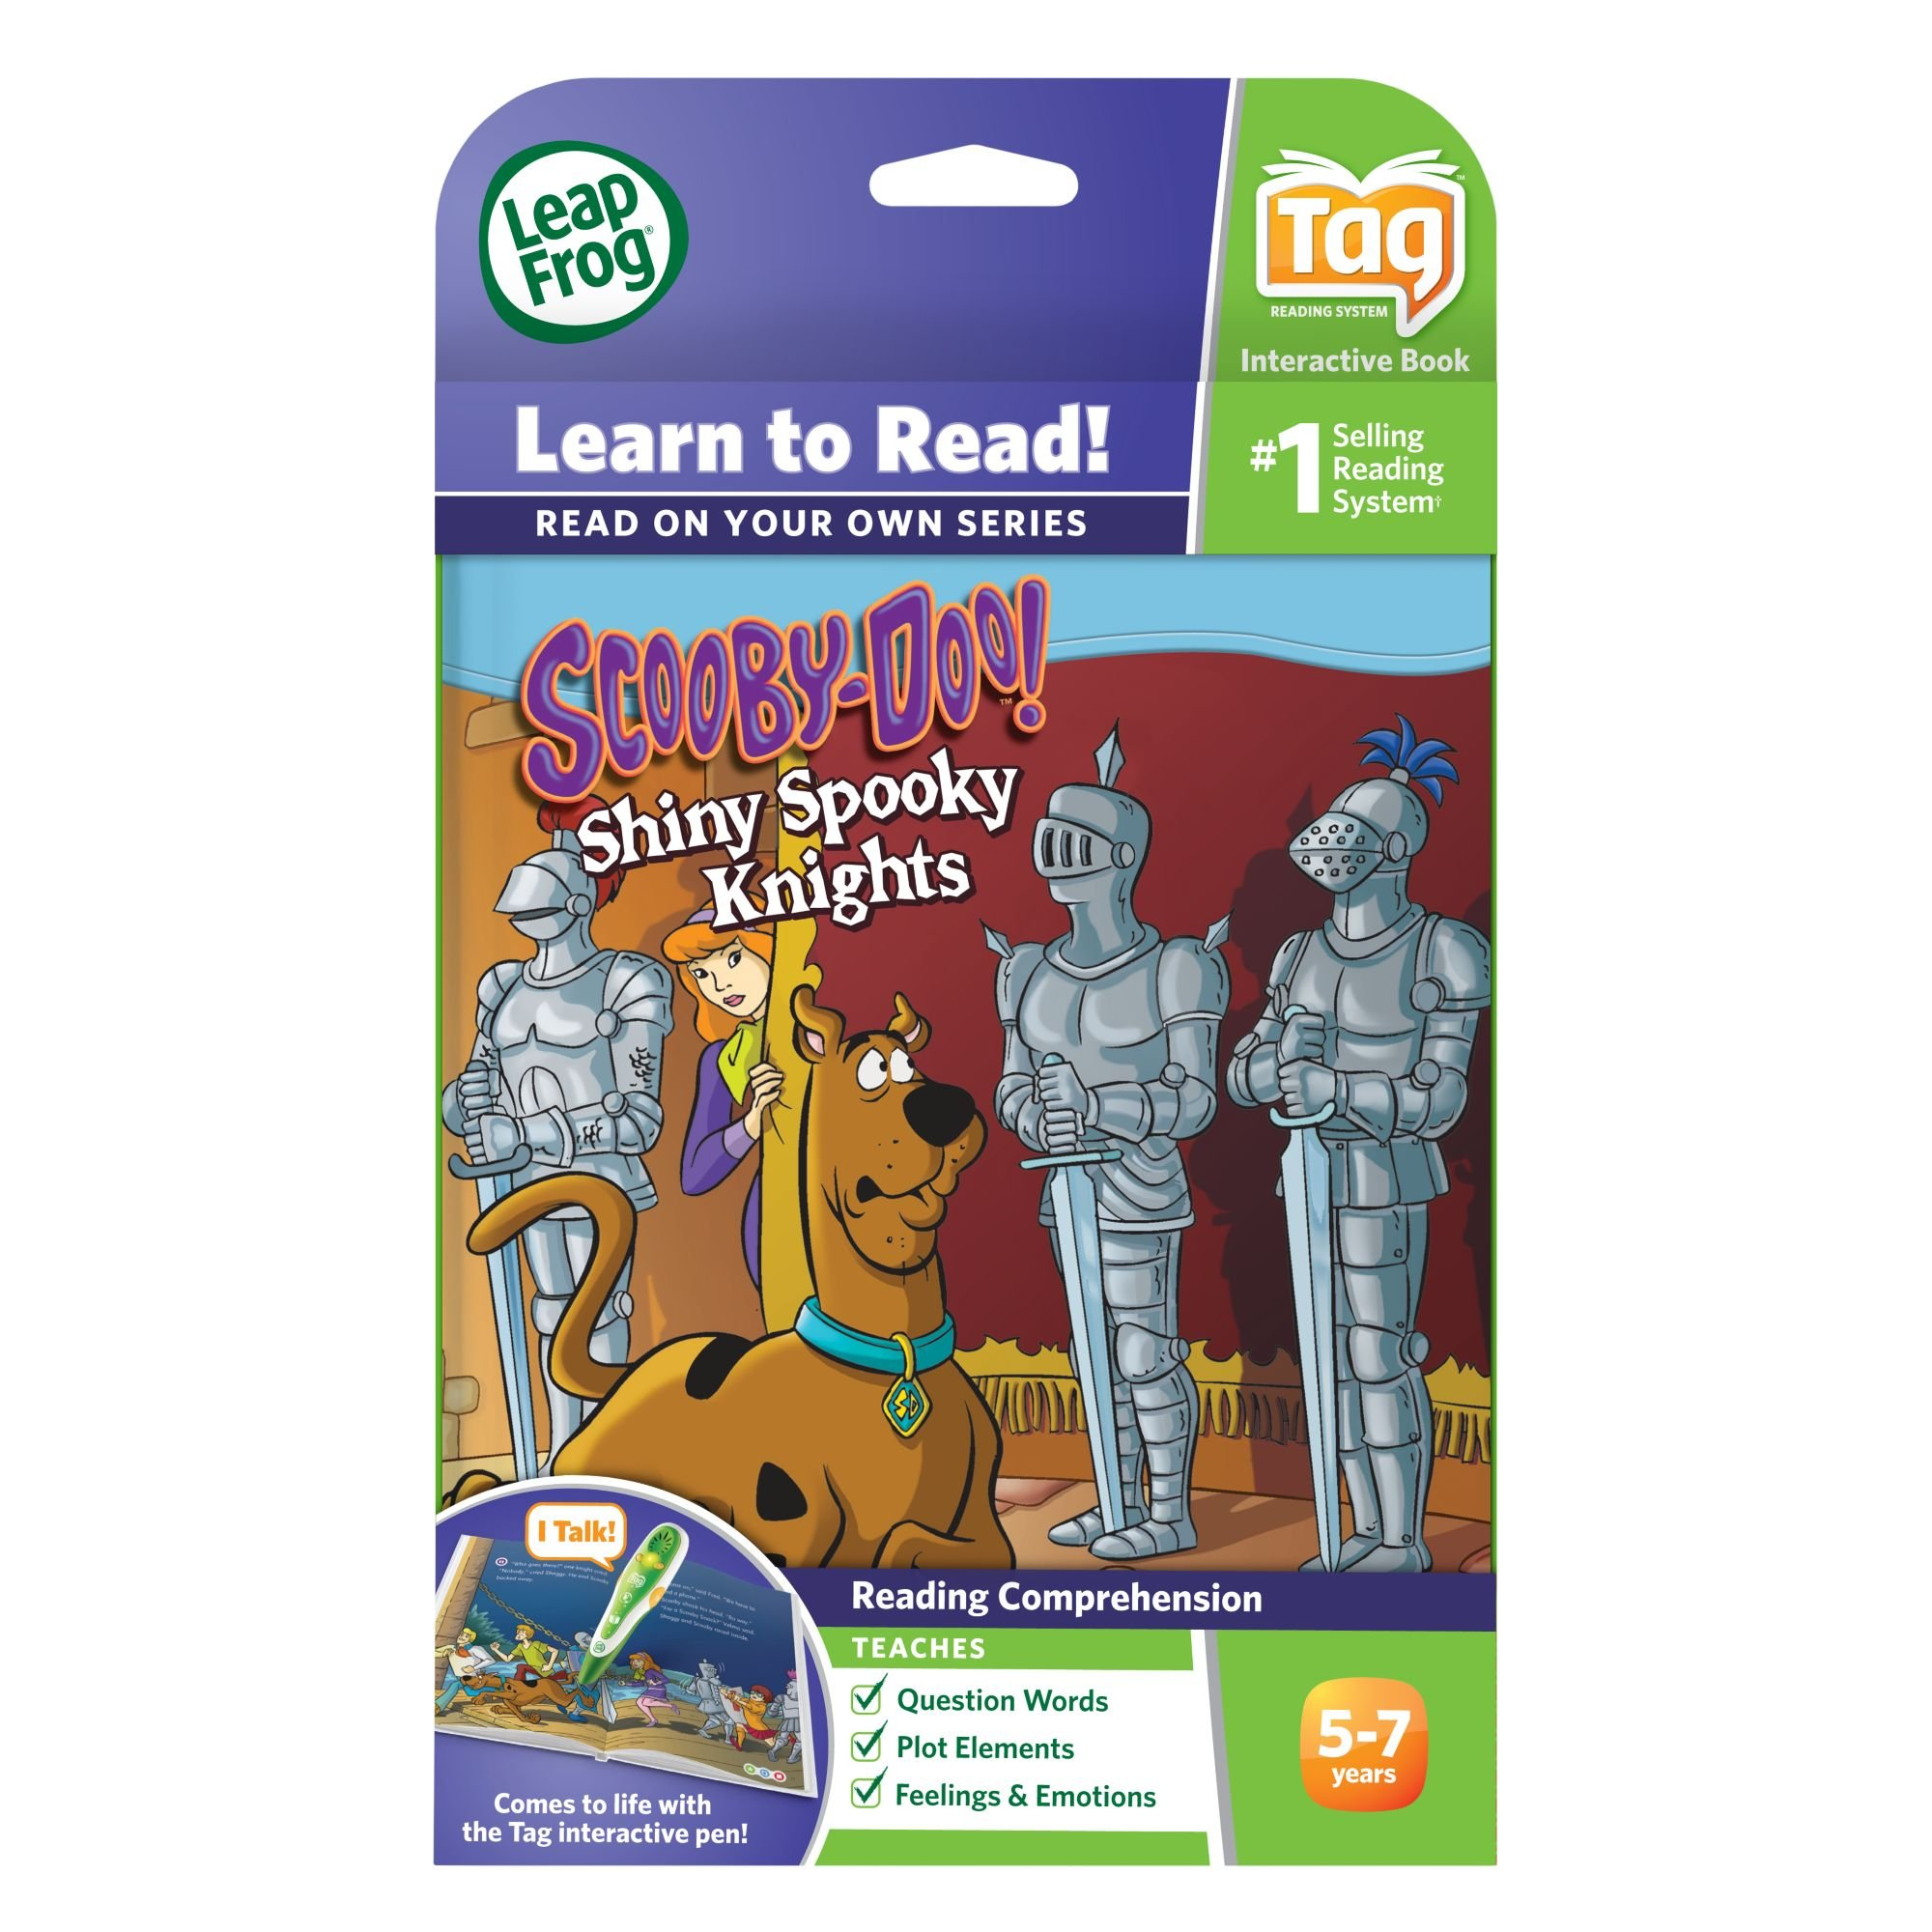 LeapFrog LeapReader Book: Scooby-Doo! Shiny Spooky Knights (works with Tag) by LeapFrog (Image #4)